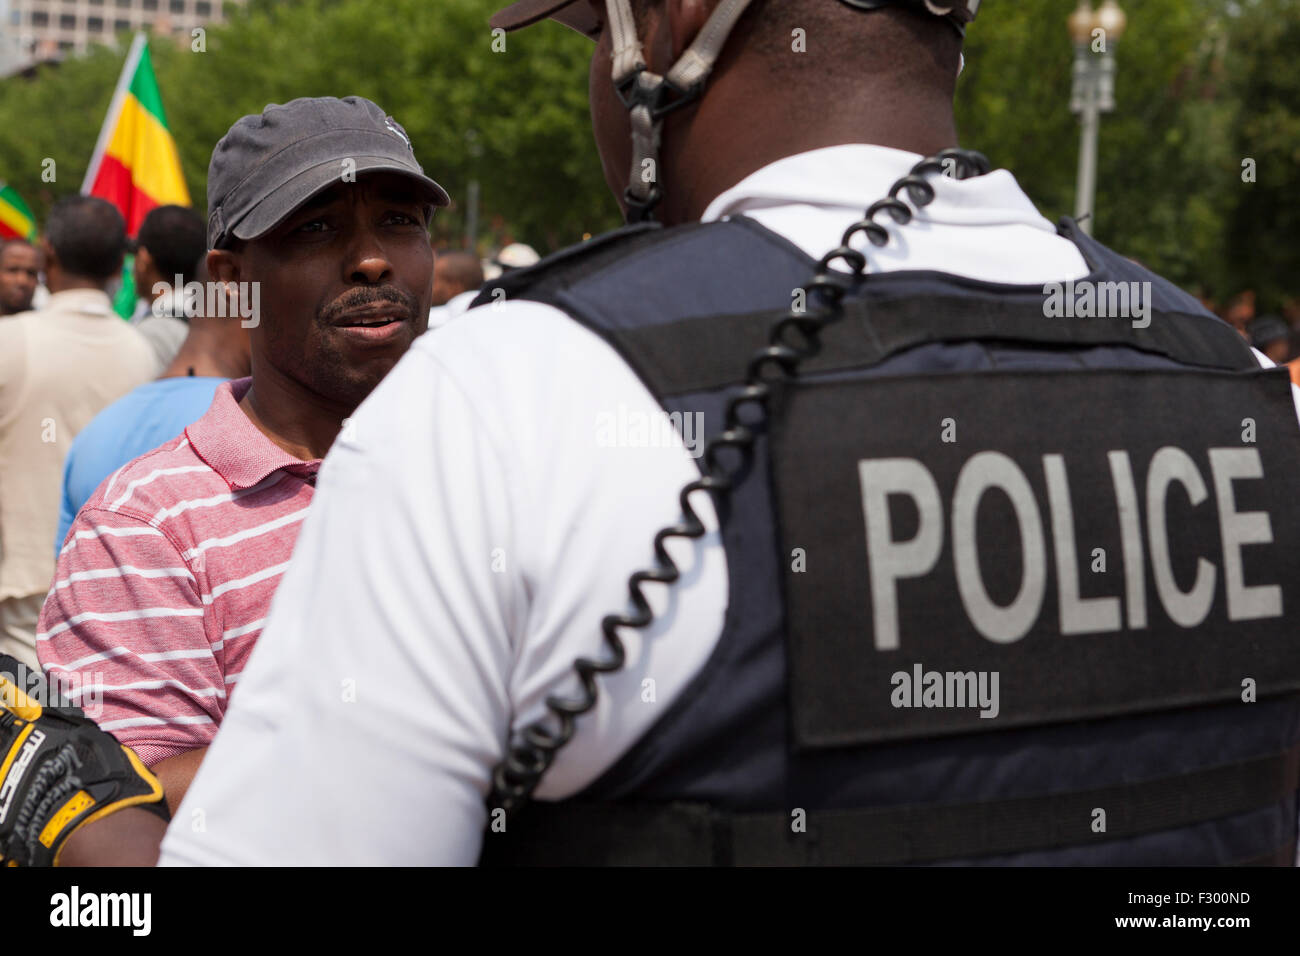 Policeman speaking with civilian protester - USA - Stock Image